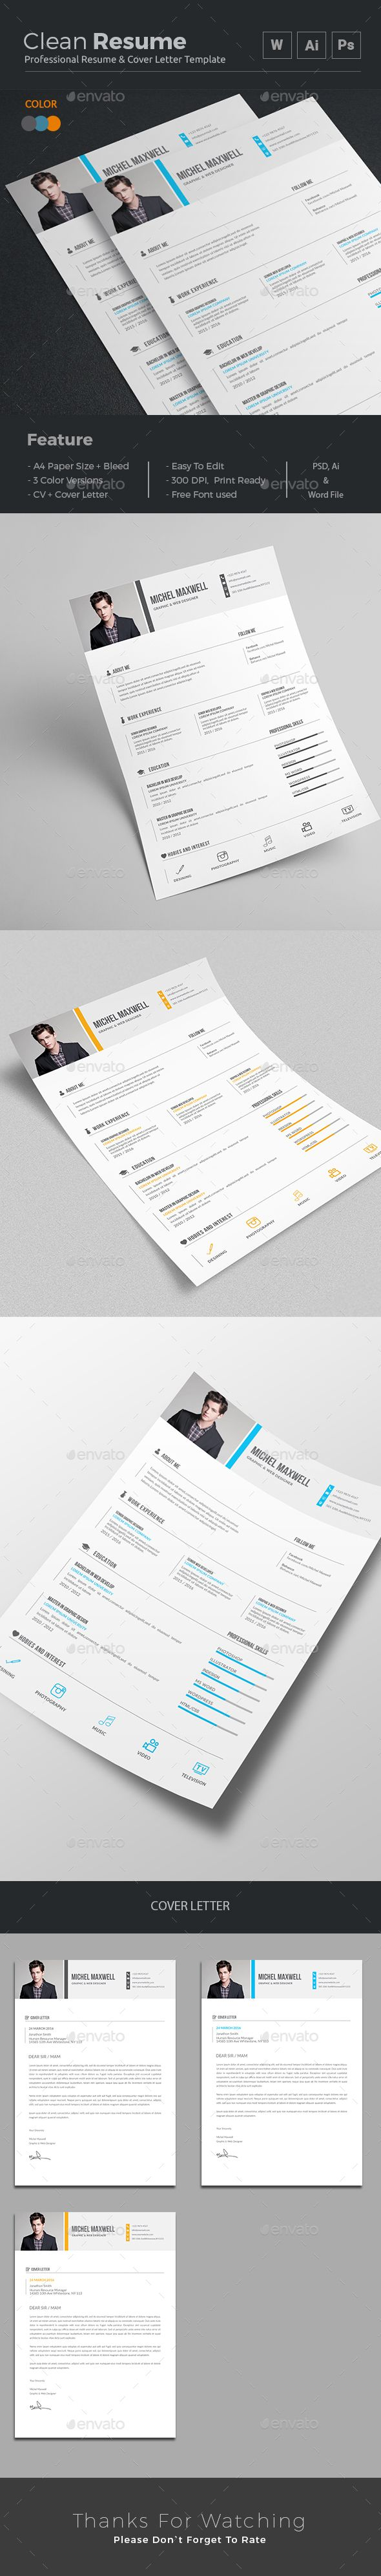 53 best cv images on Pinterest | Resume, Curriculum and Resume cv